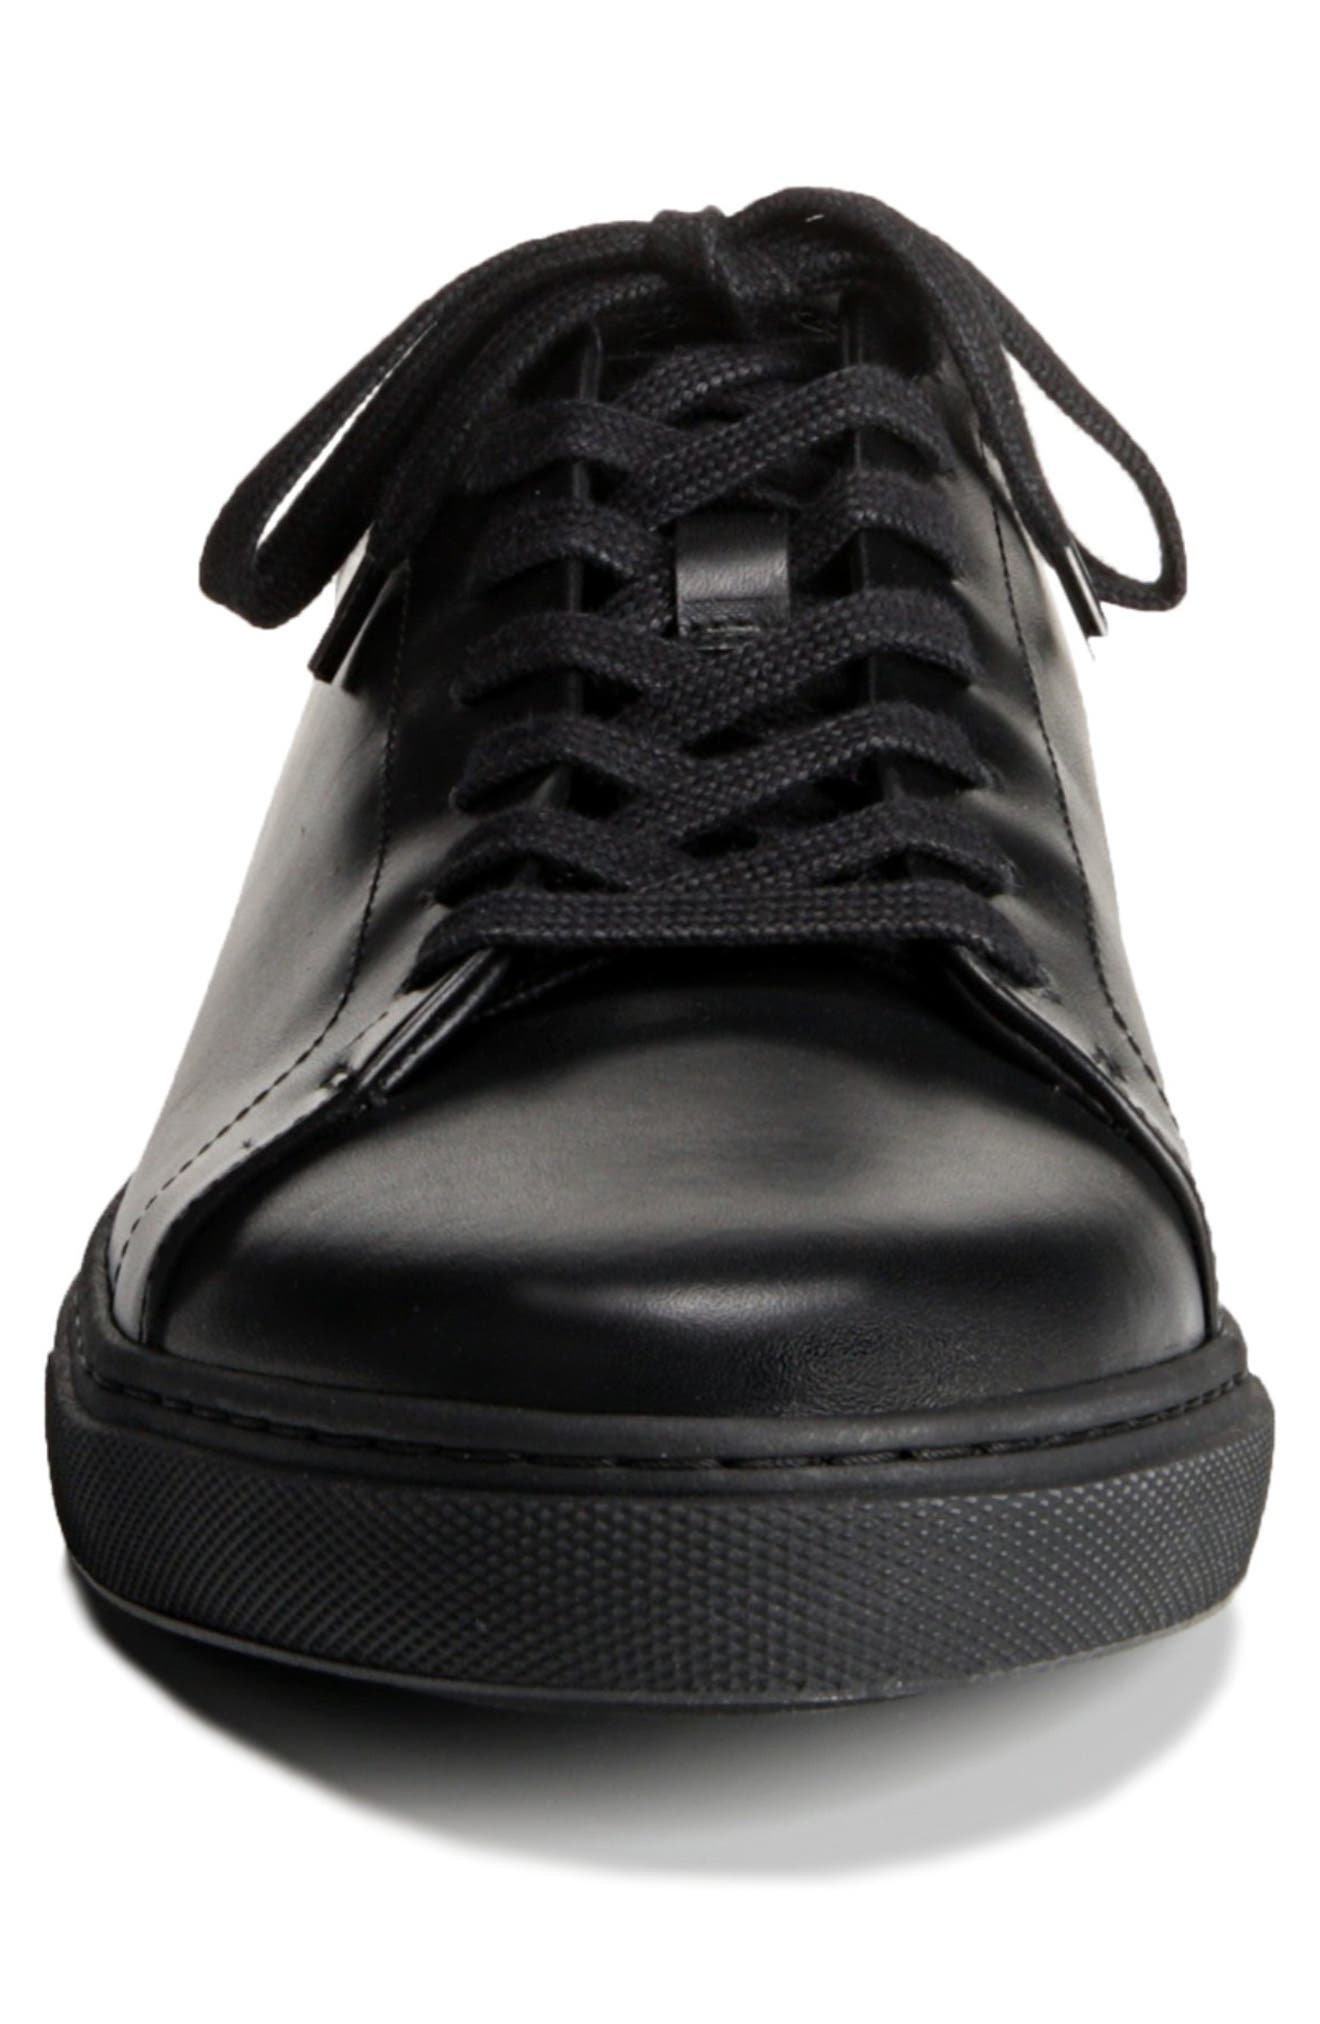 Canal Court Sneaker,                             Alternate thumbnail 4, color,                             BLACK LEATHER